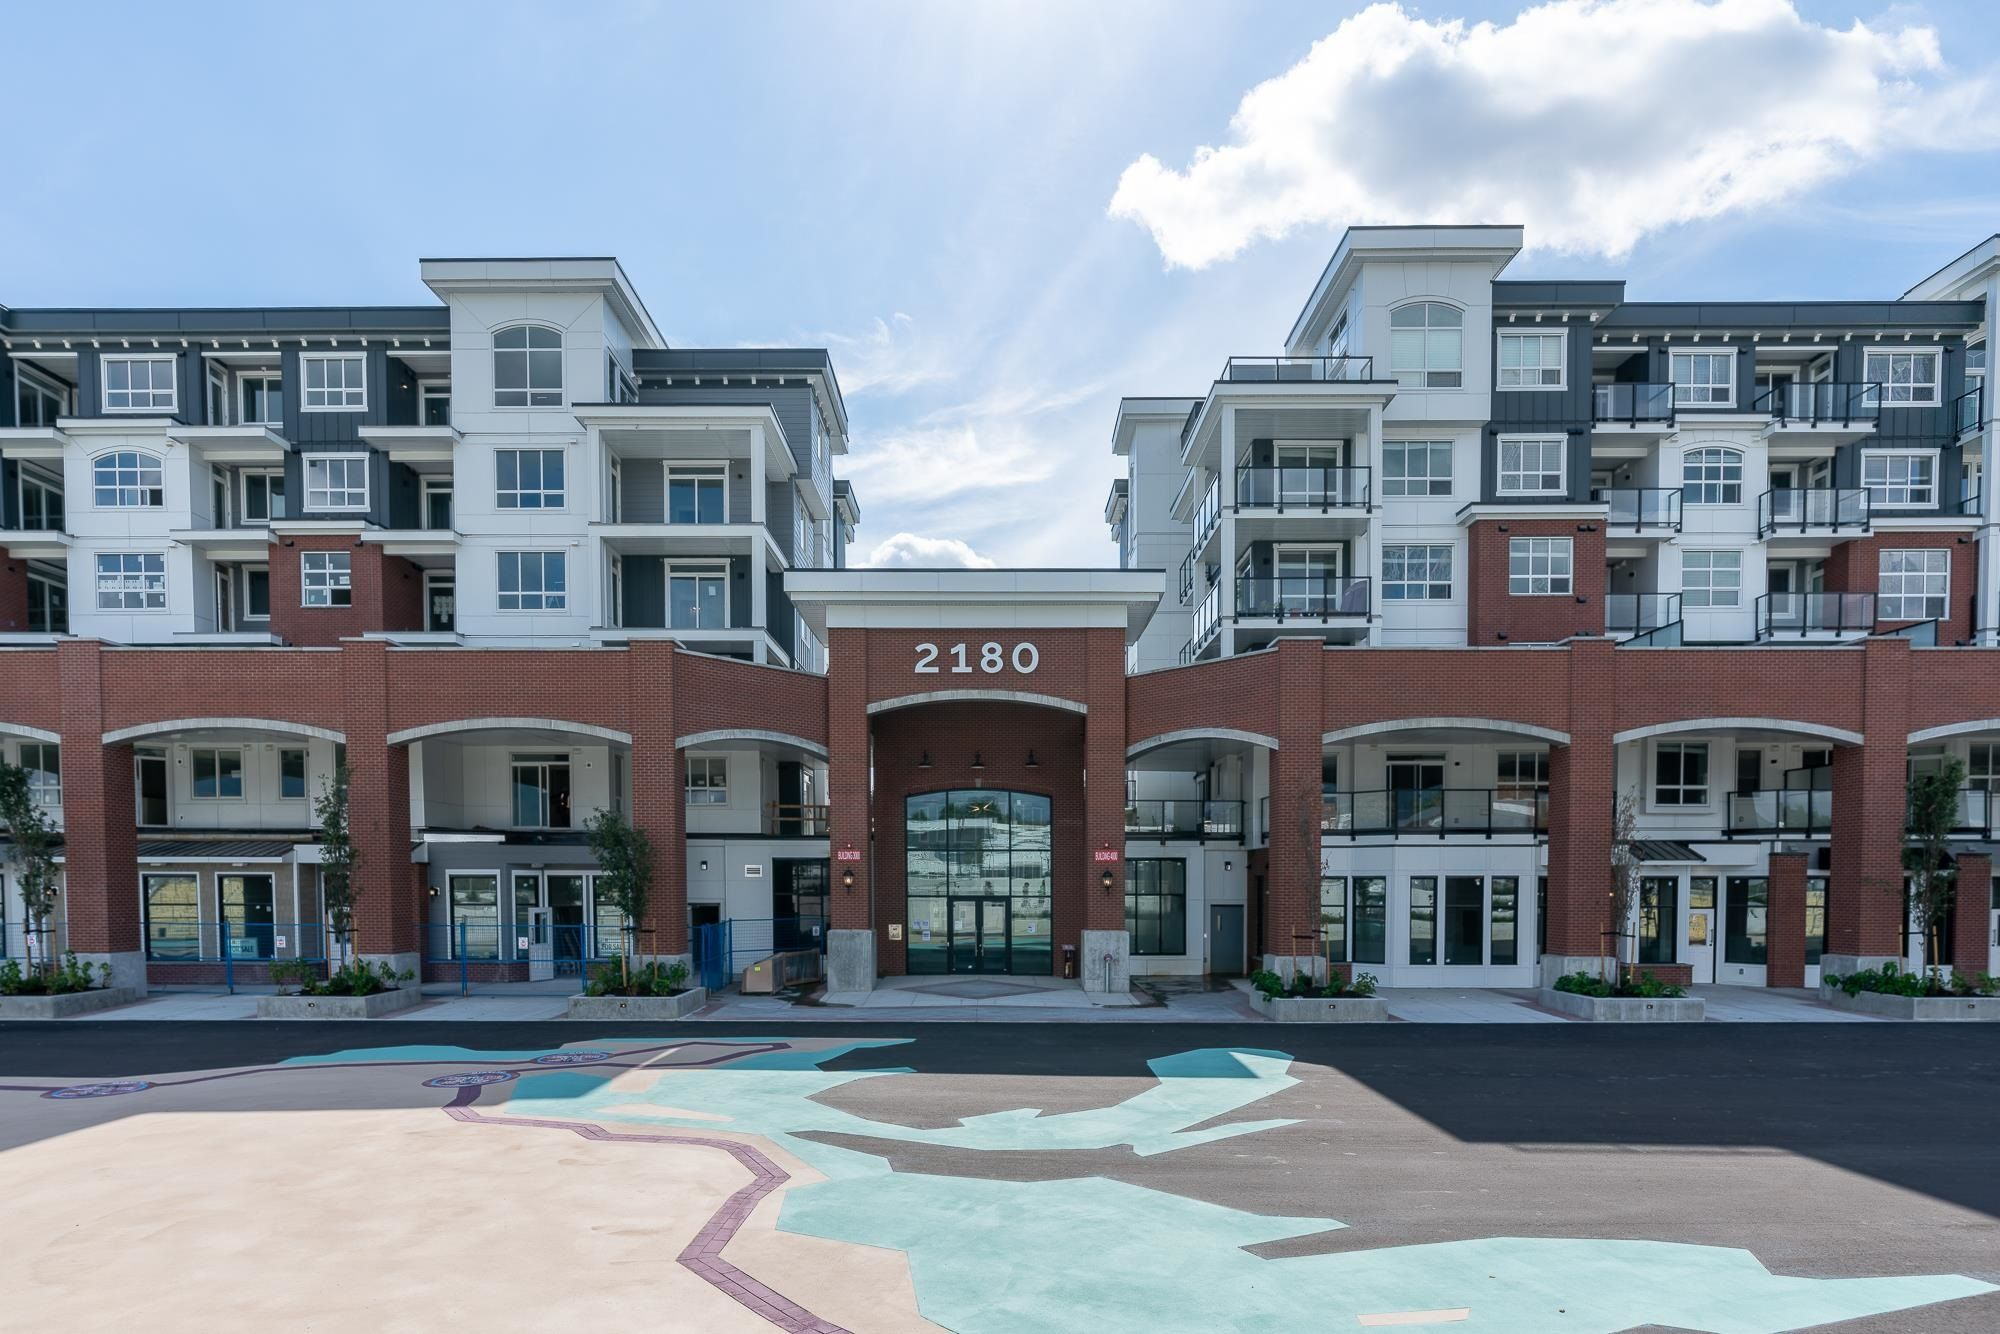 """Main Photo: 4614 2180 KELLY Avenue in Port Coquitlam: Central Pt Coquitlam Condo for sale in """"Montrose Square"""" : MLS®# R2618577"""